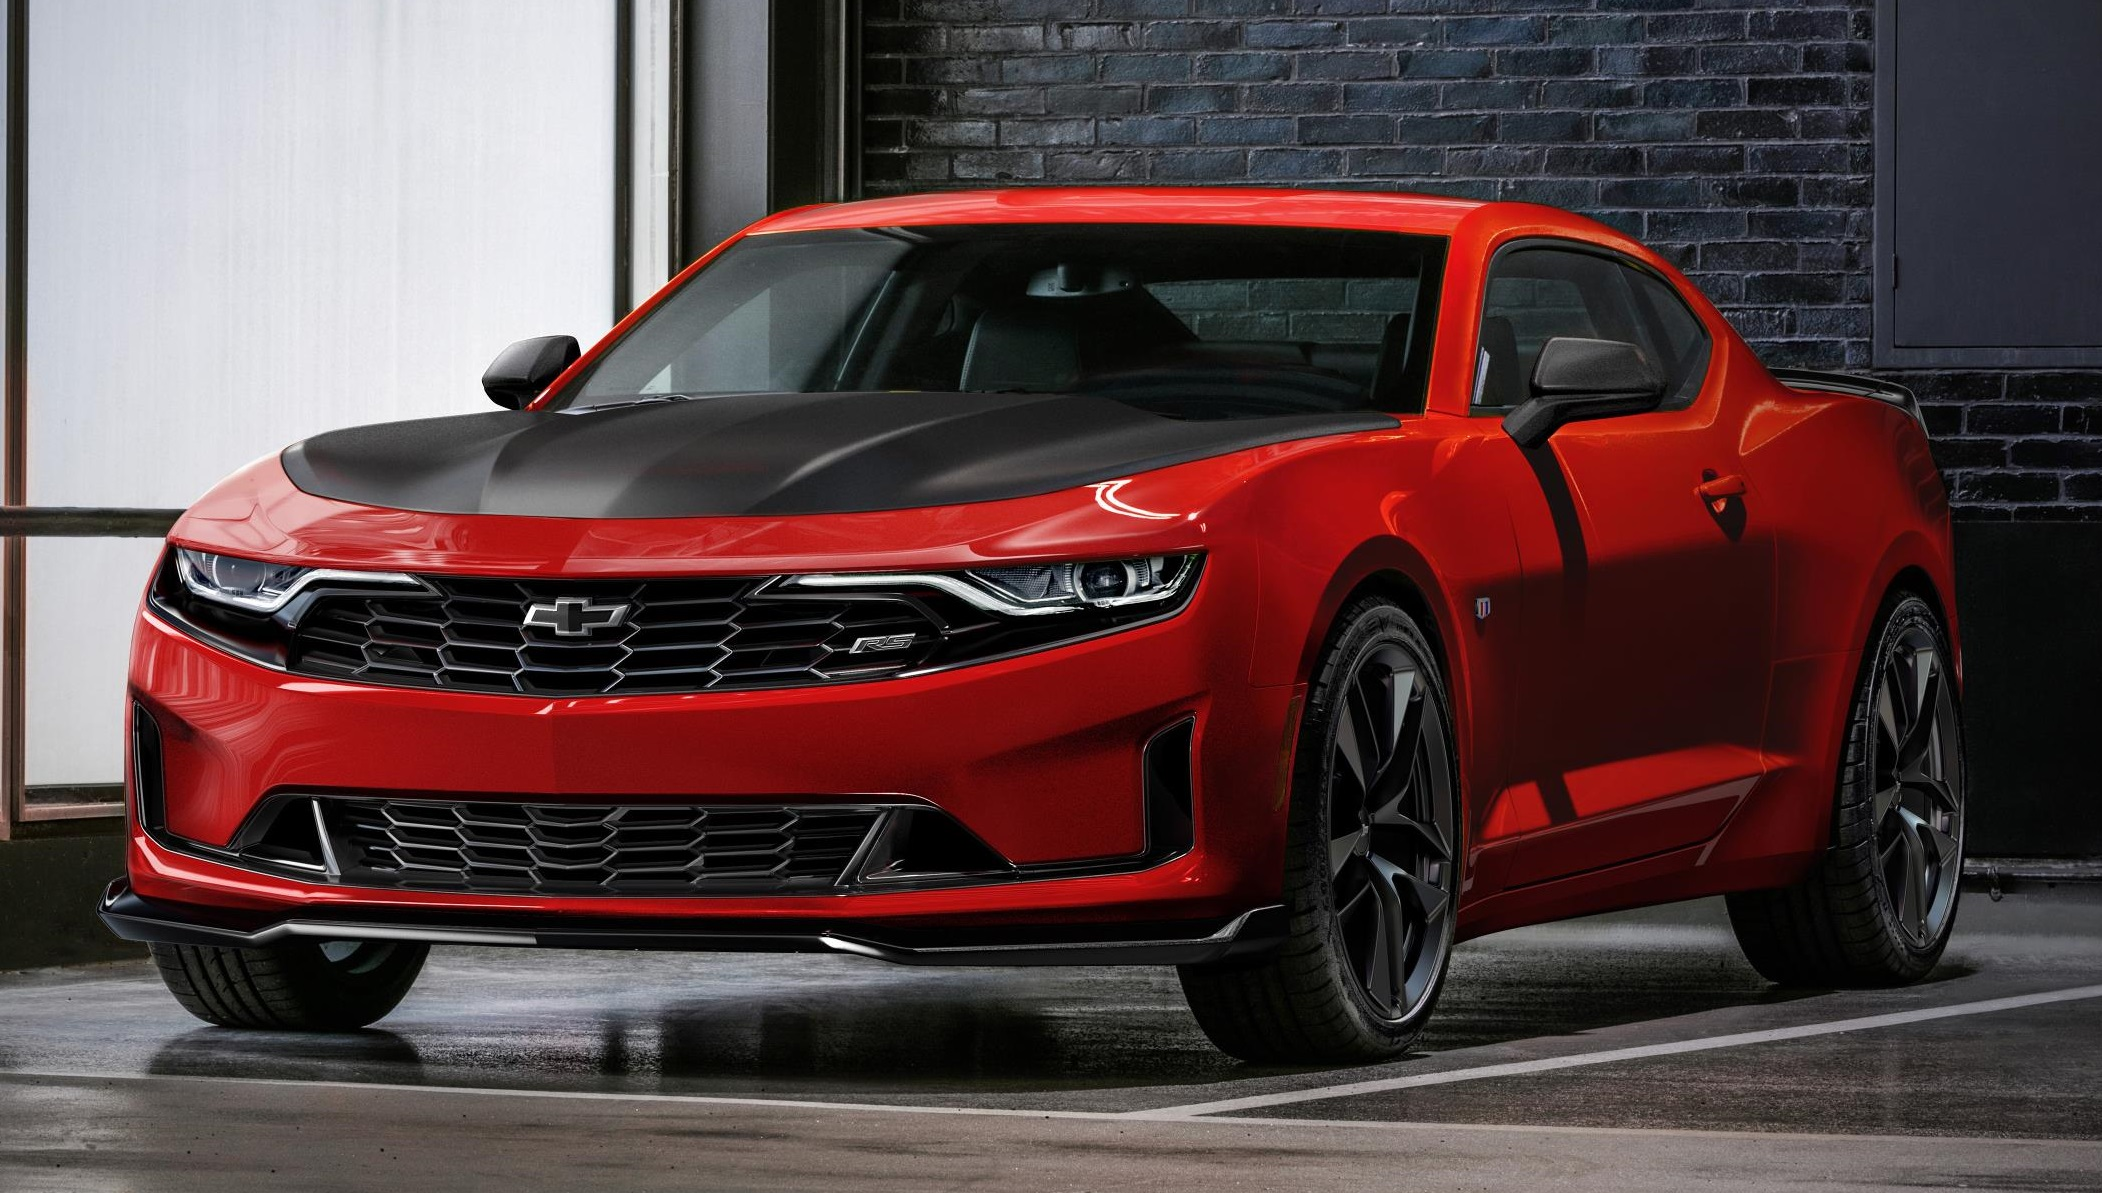 2019 camaro lineup unveiled with new looks and tech. Black Bedroom Furniture Sets. Home Design Ideas